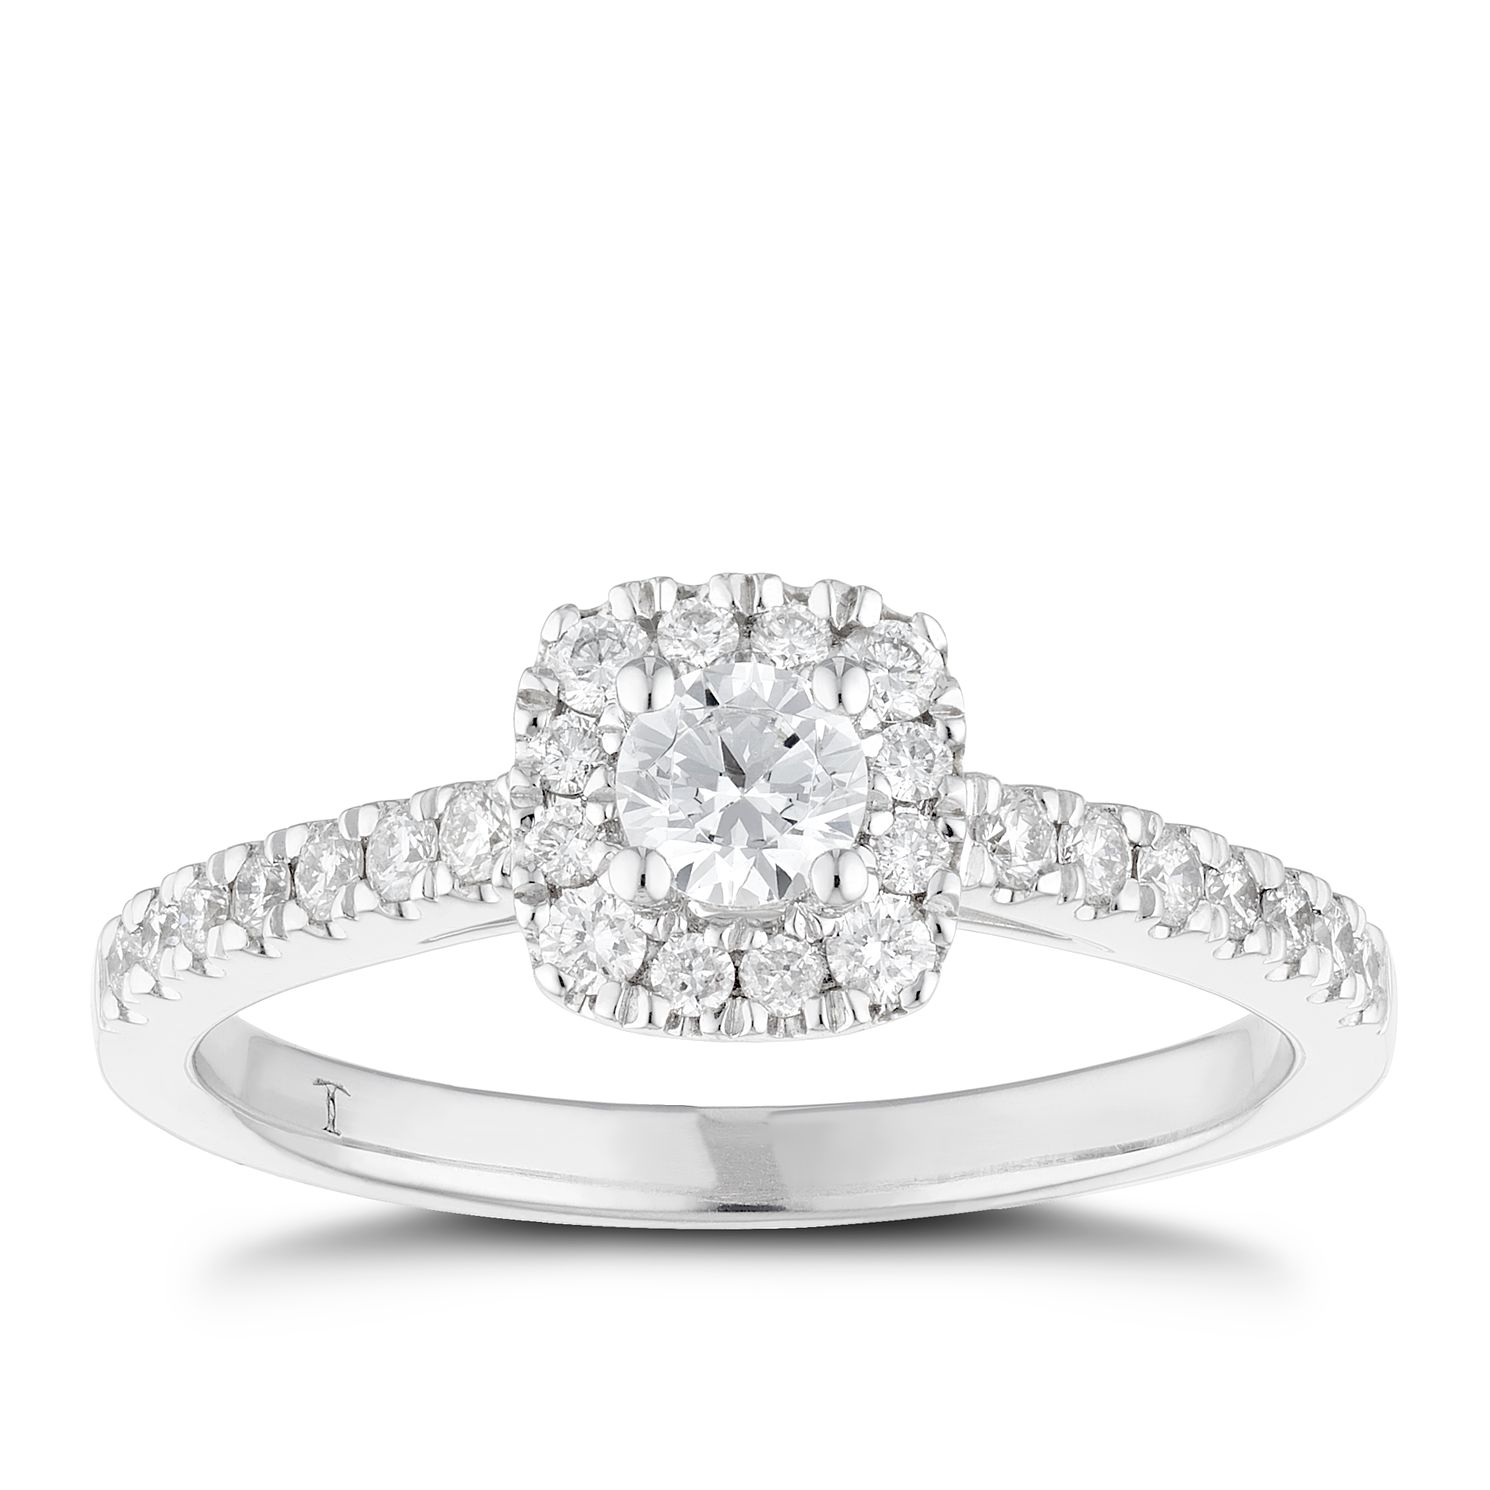 Tolkowsky 18ct White Gold 0.50ct Total Diamond Halo Ring - Product number 6373275